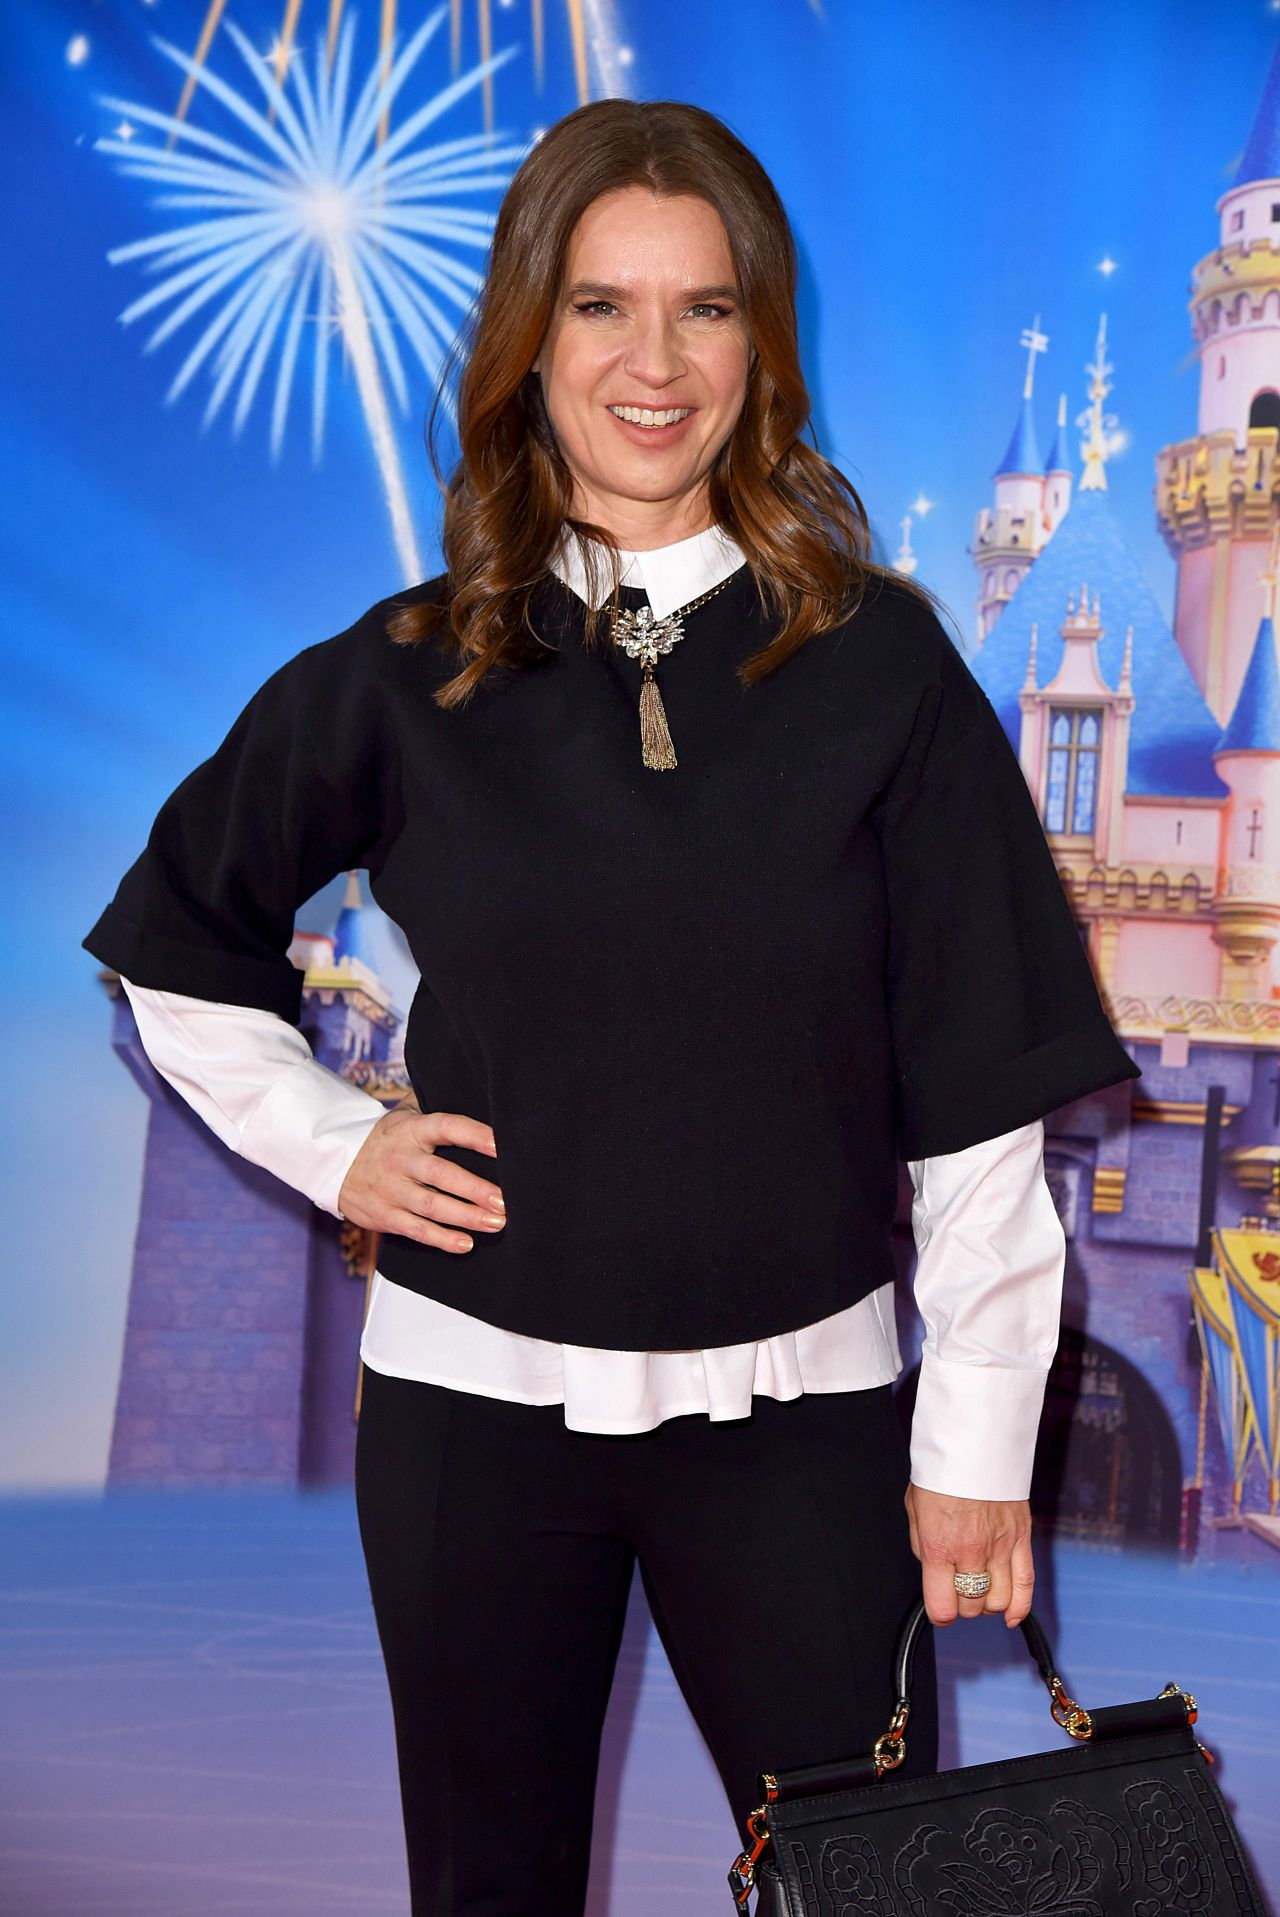 Katarina Witt at 'Disney on ice' Premiere in Velodrom, Berlin 3/2/ 2017